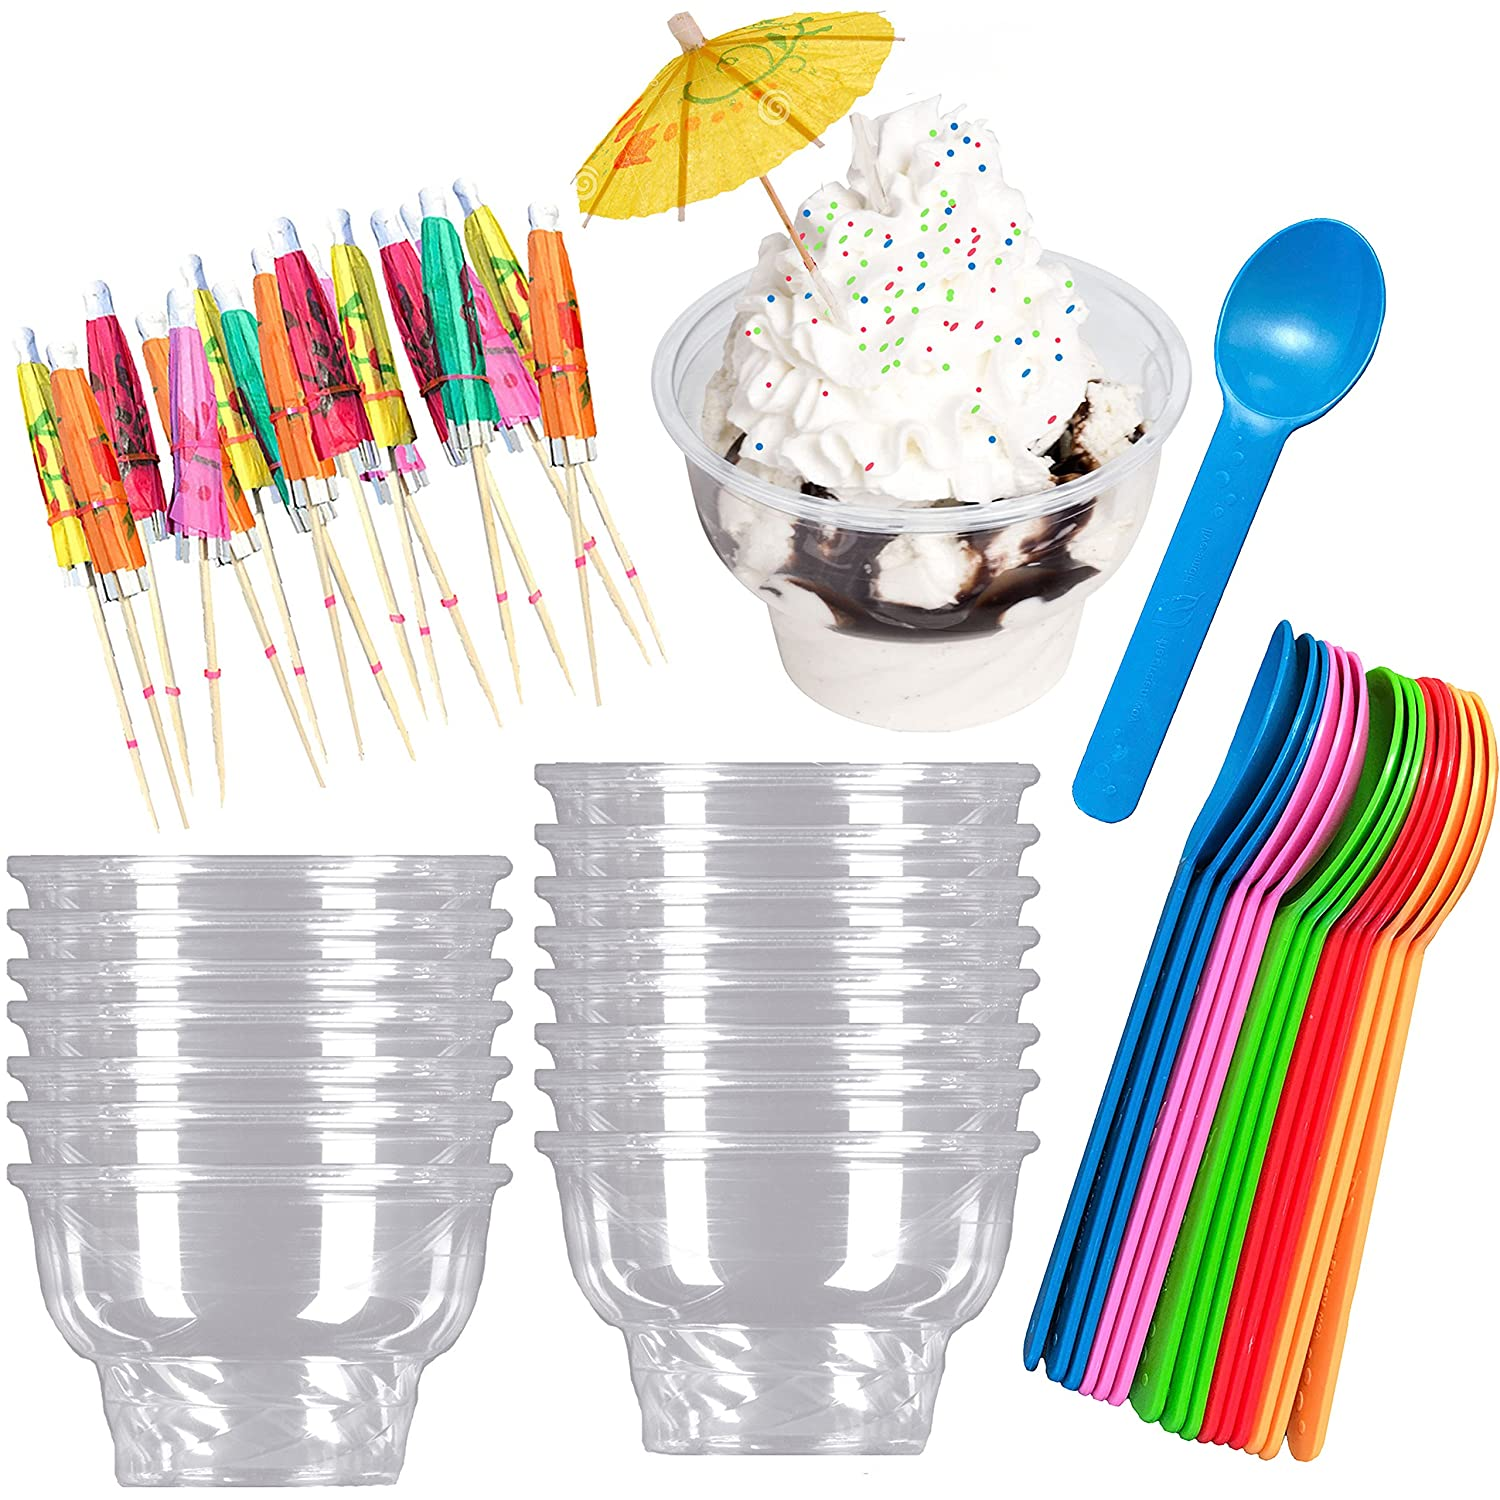 Ice Cream Sundae Kit - Clear Plastic 8 Ounce Dessert Dishes - Eco Friendly Plastic Spoons - Paper Umbrella Picks- 16 Each - Pink, Blue, Yellow, Green, Orange Party Supplies SYNCHKG115696